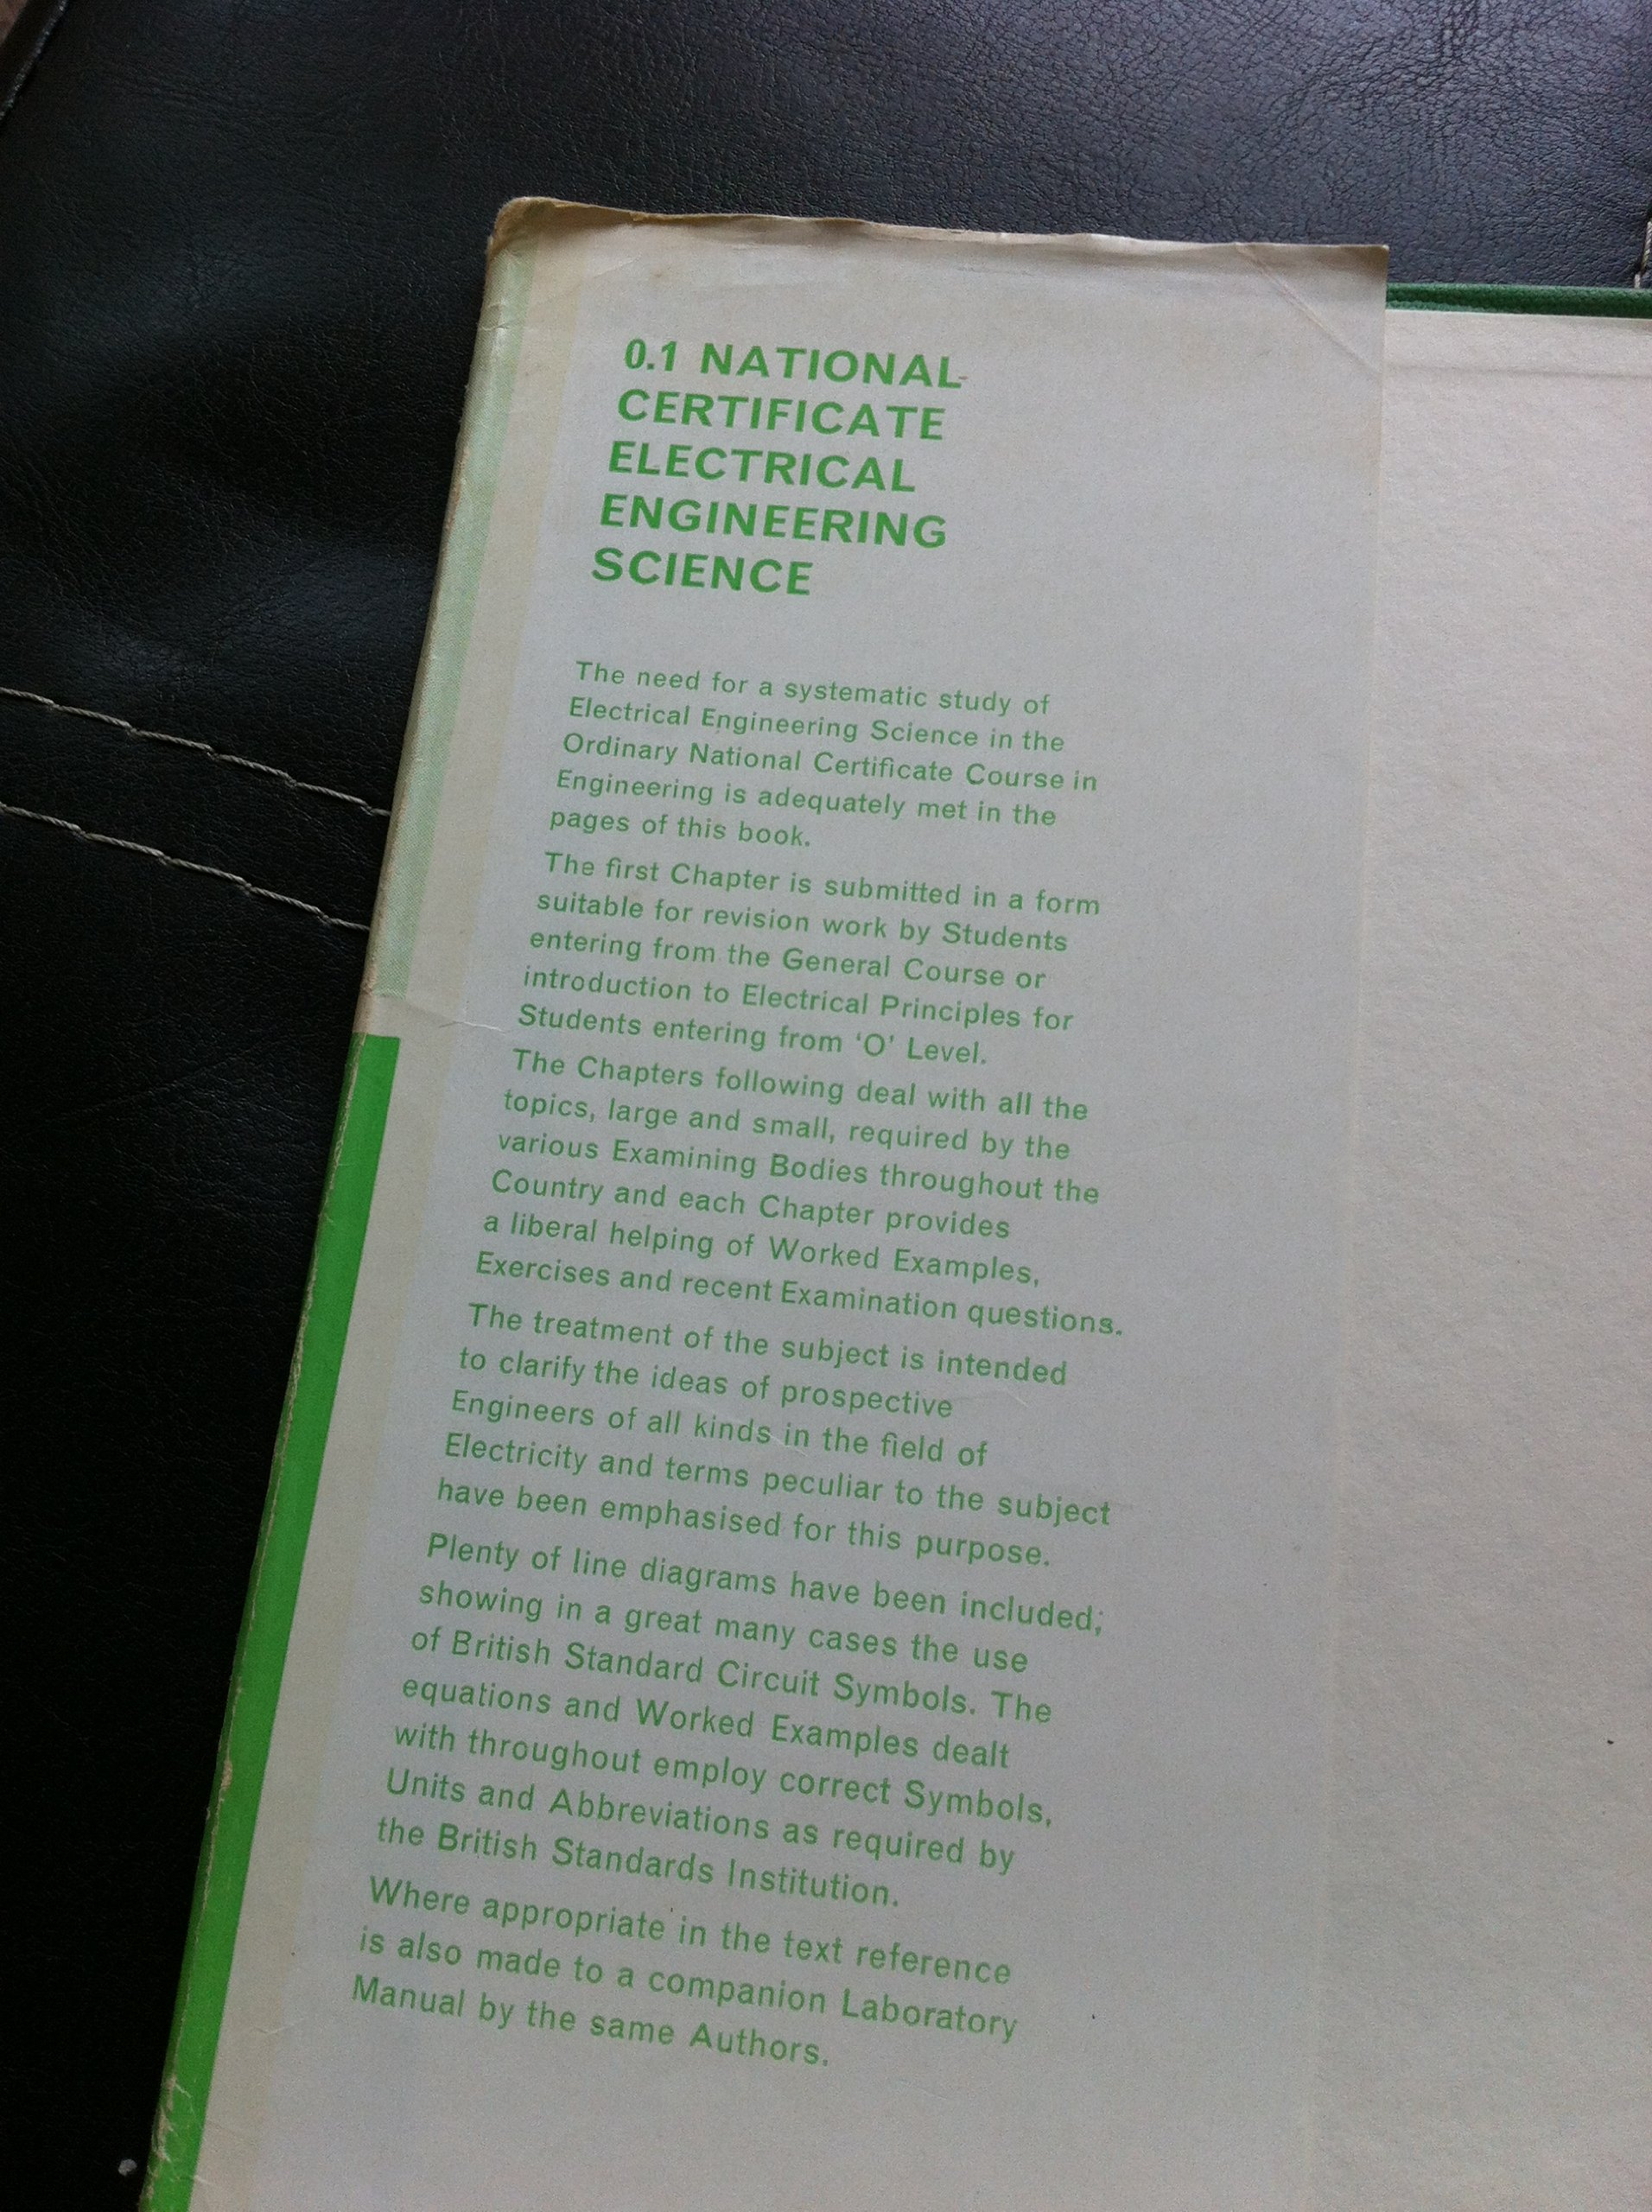 National Certificate Electrical Engineering Science Technical